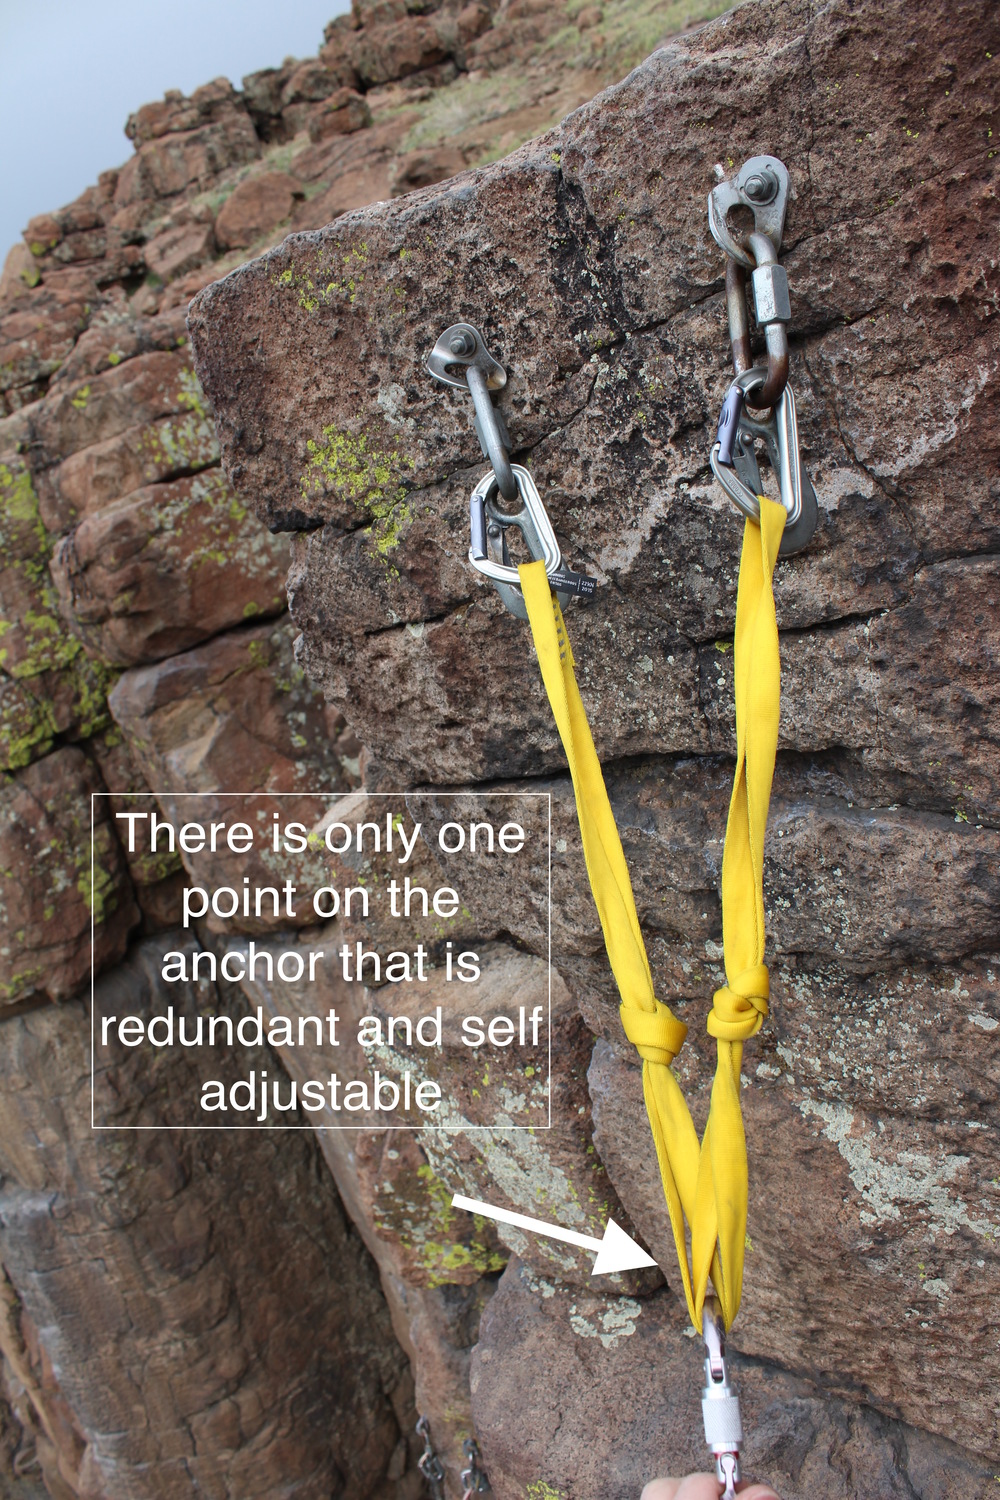 Self Adjusting anchors like the Magic X with Load Limiting Knots or the Quad, don't really have a shelf.  The Magic X only offers one point that boasts material redundancy and loads the components equally through a range of motion.